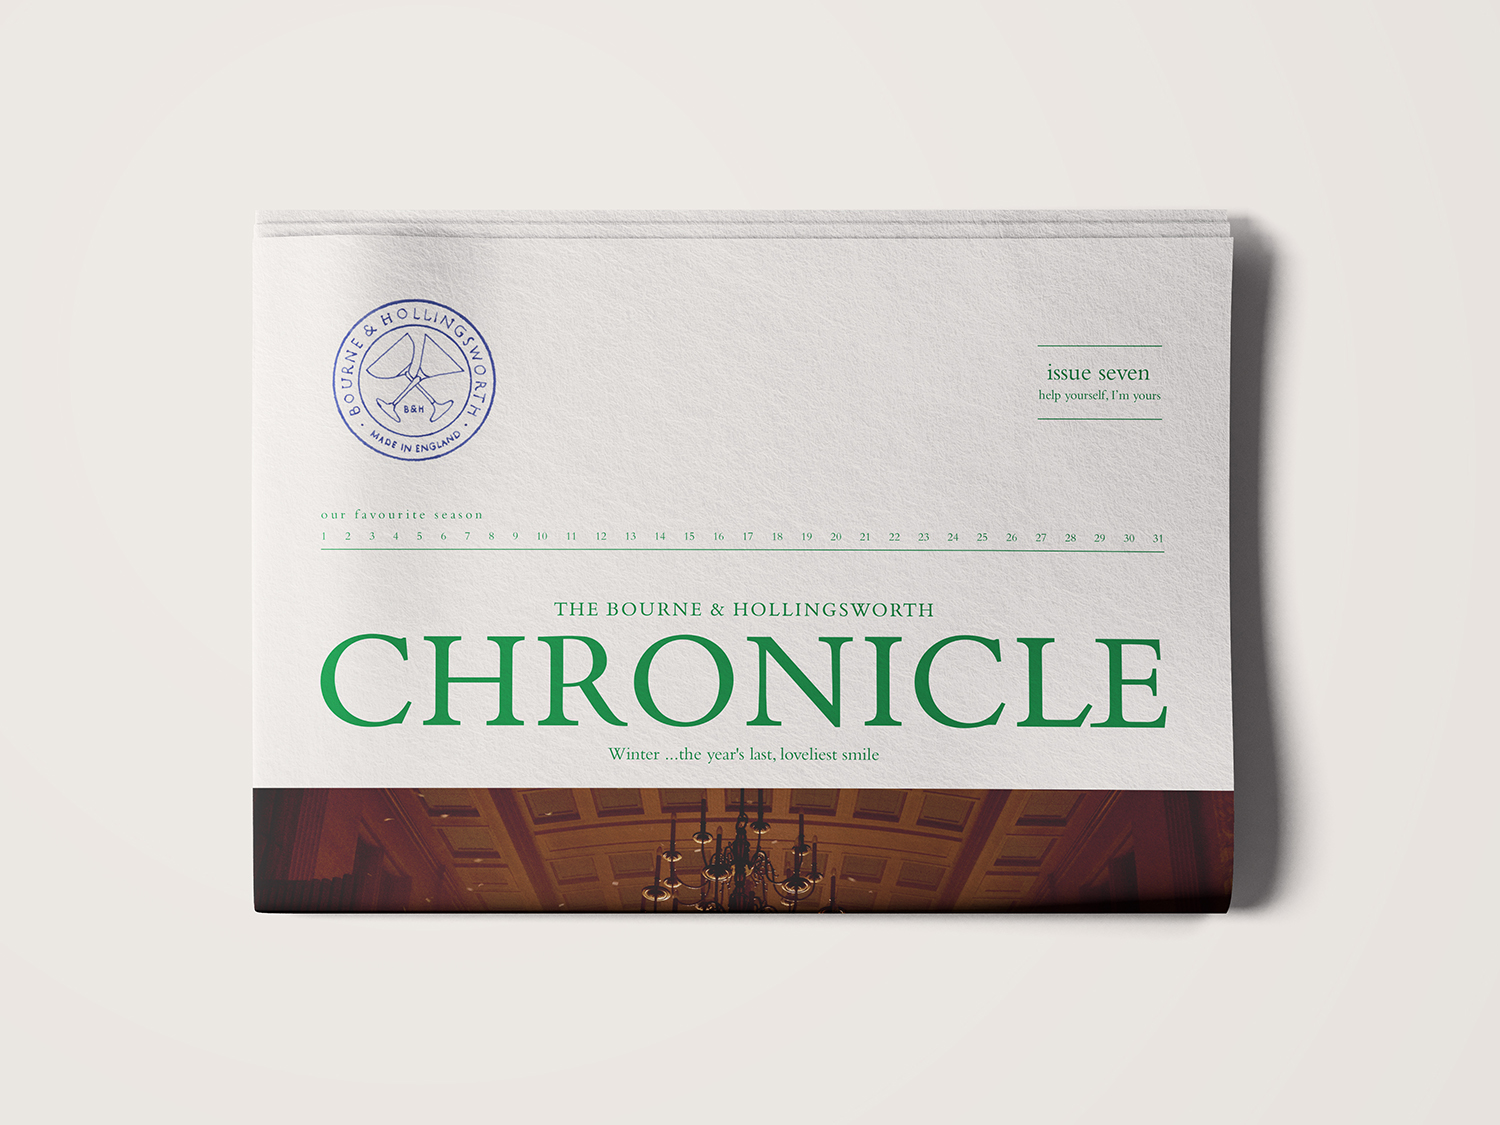 Image of a newspaper called The Chronicle